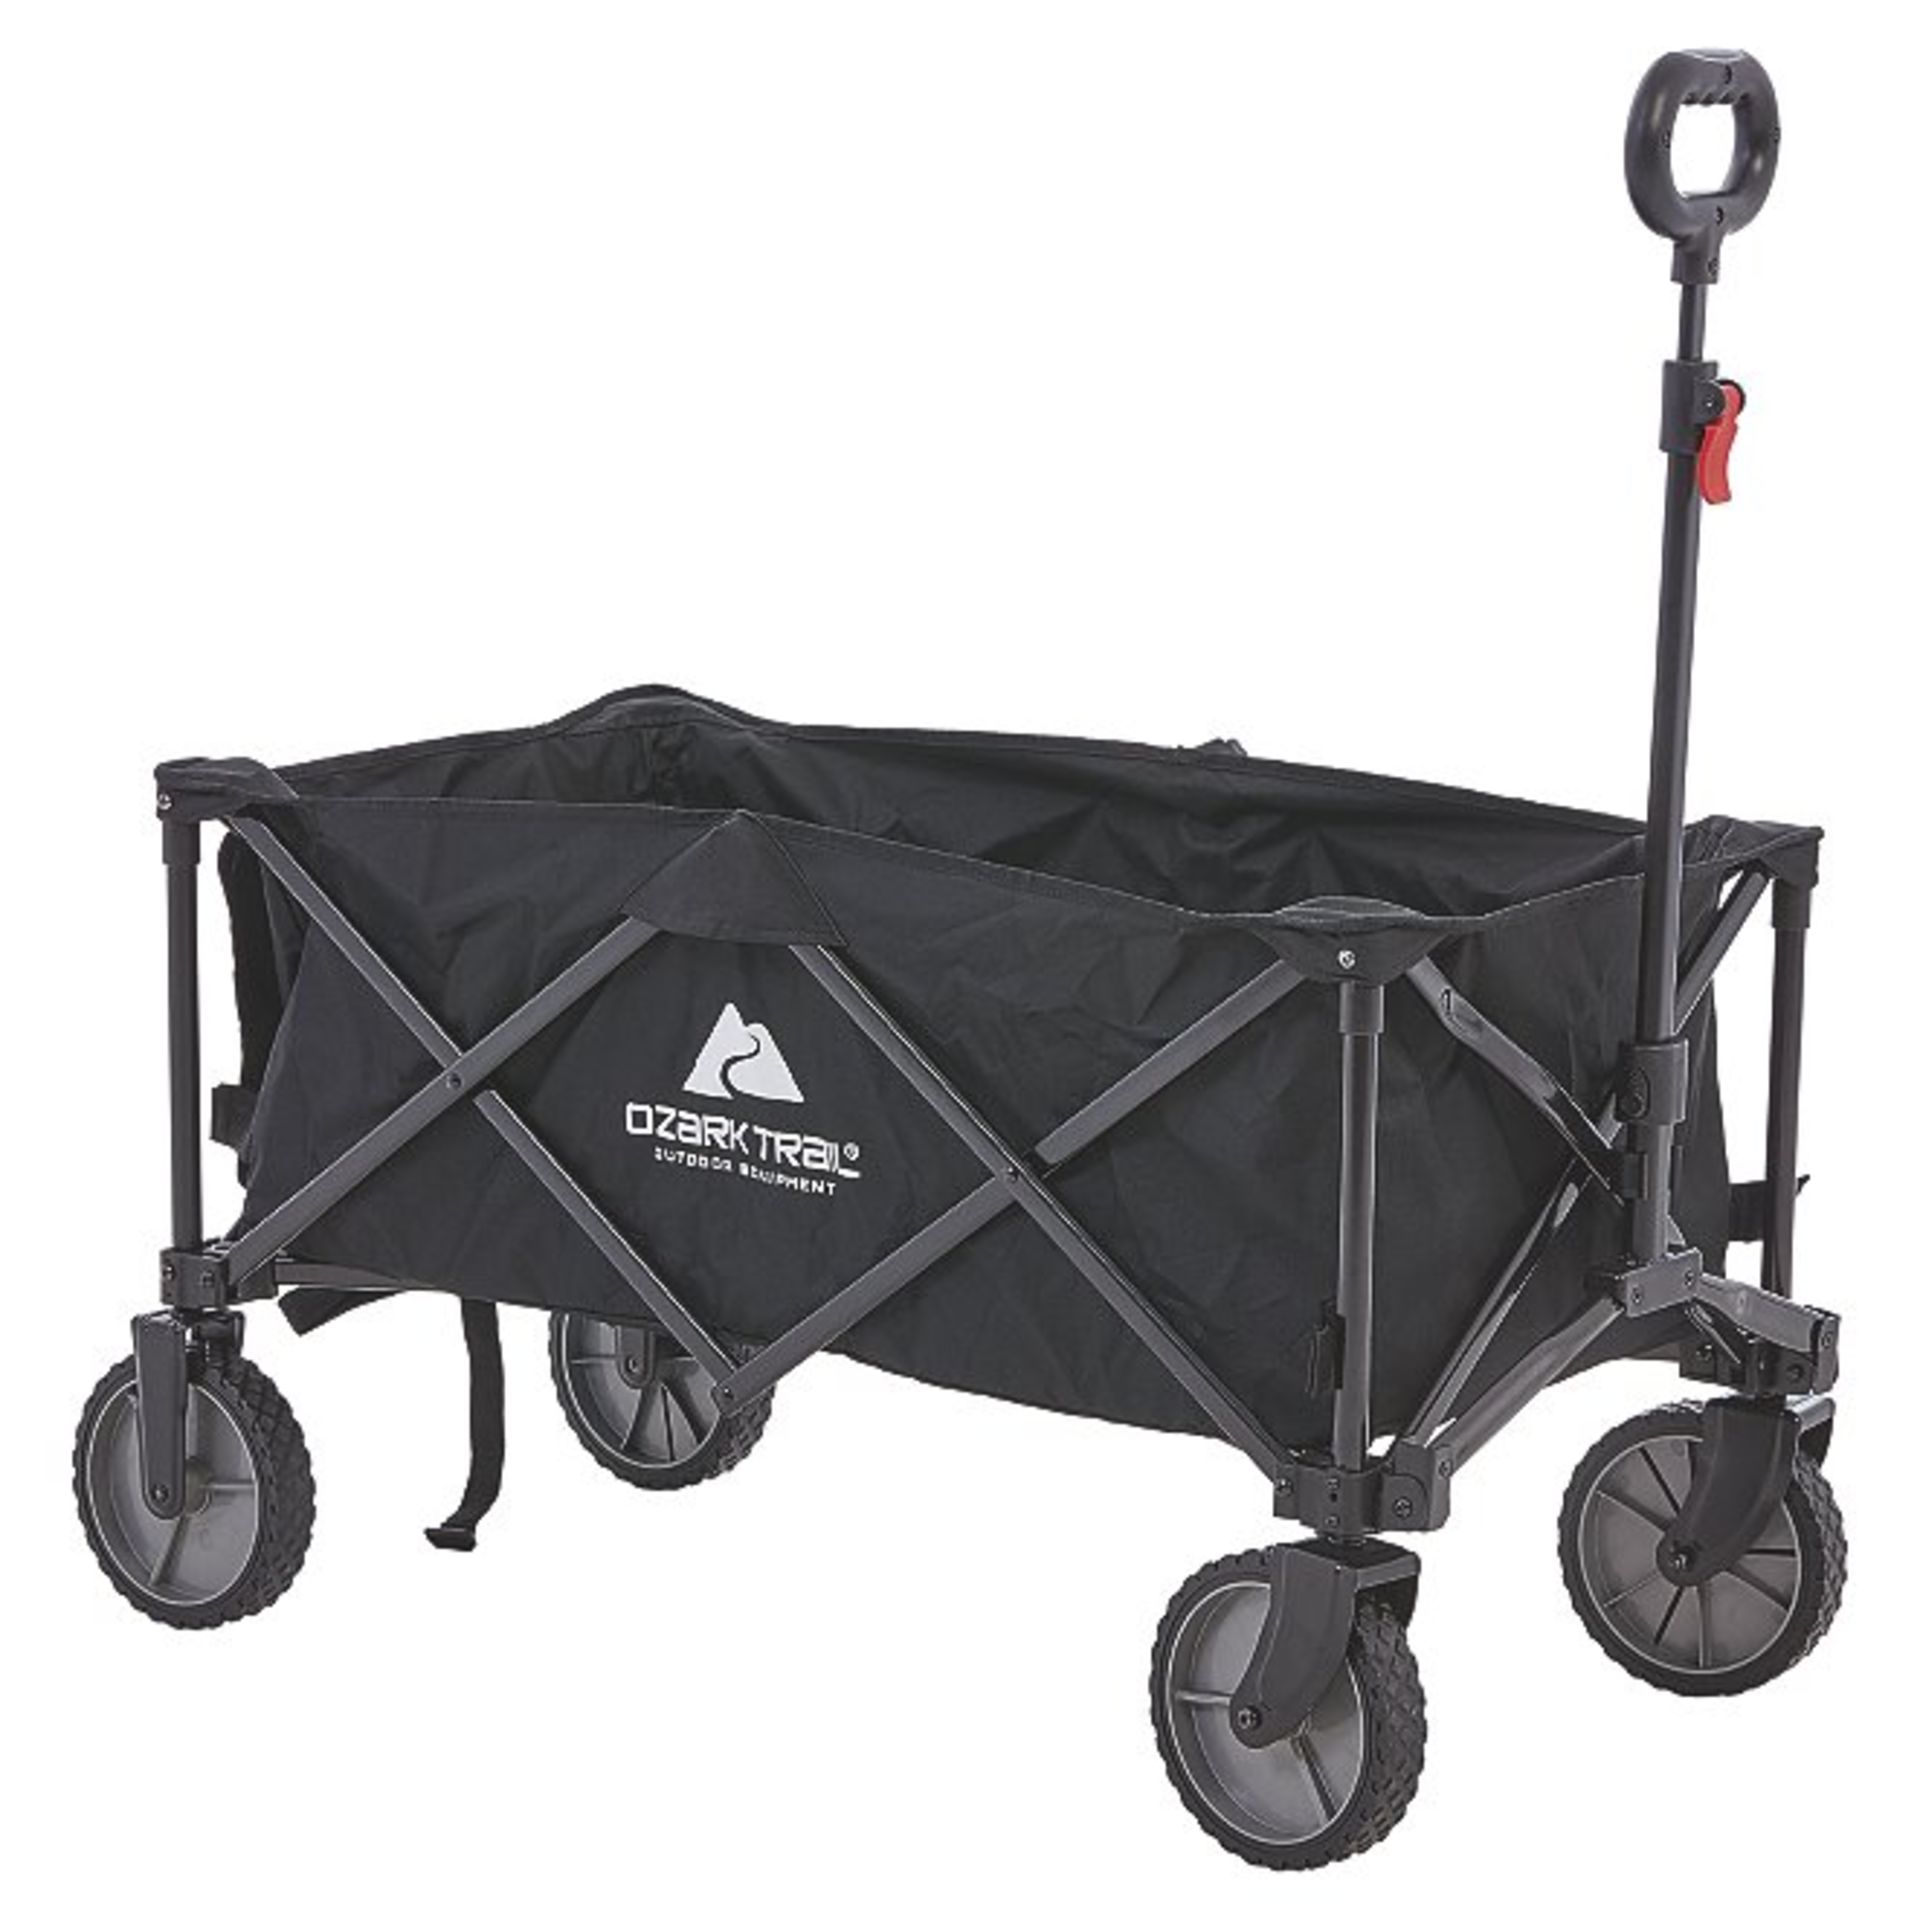 (3G) 7x Ozark Trail Items. 1x Queen Size Airbed. 2x Double Airbed. 2x Single Airbed (1x No Box). 1 - Image 5 of 10